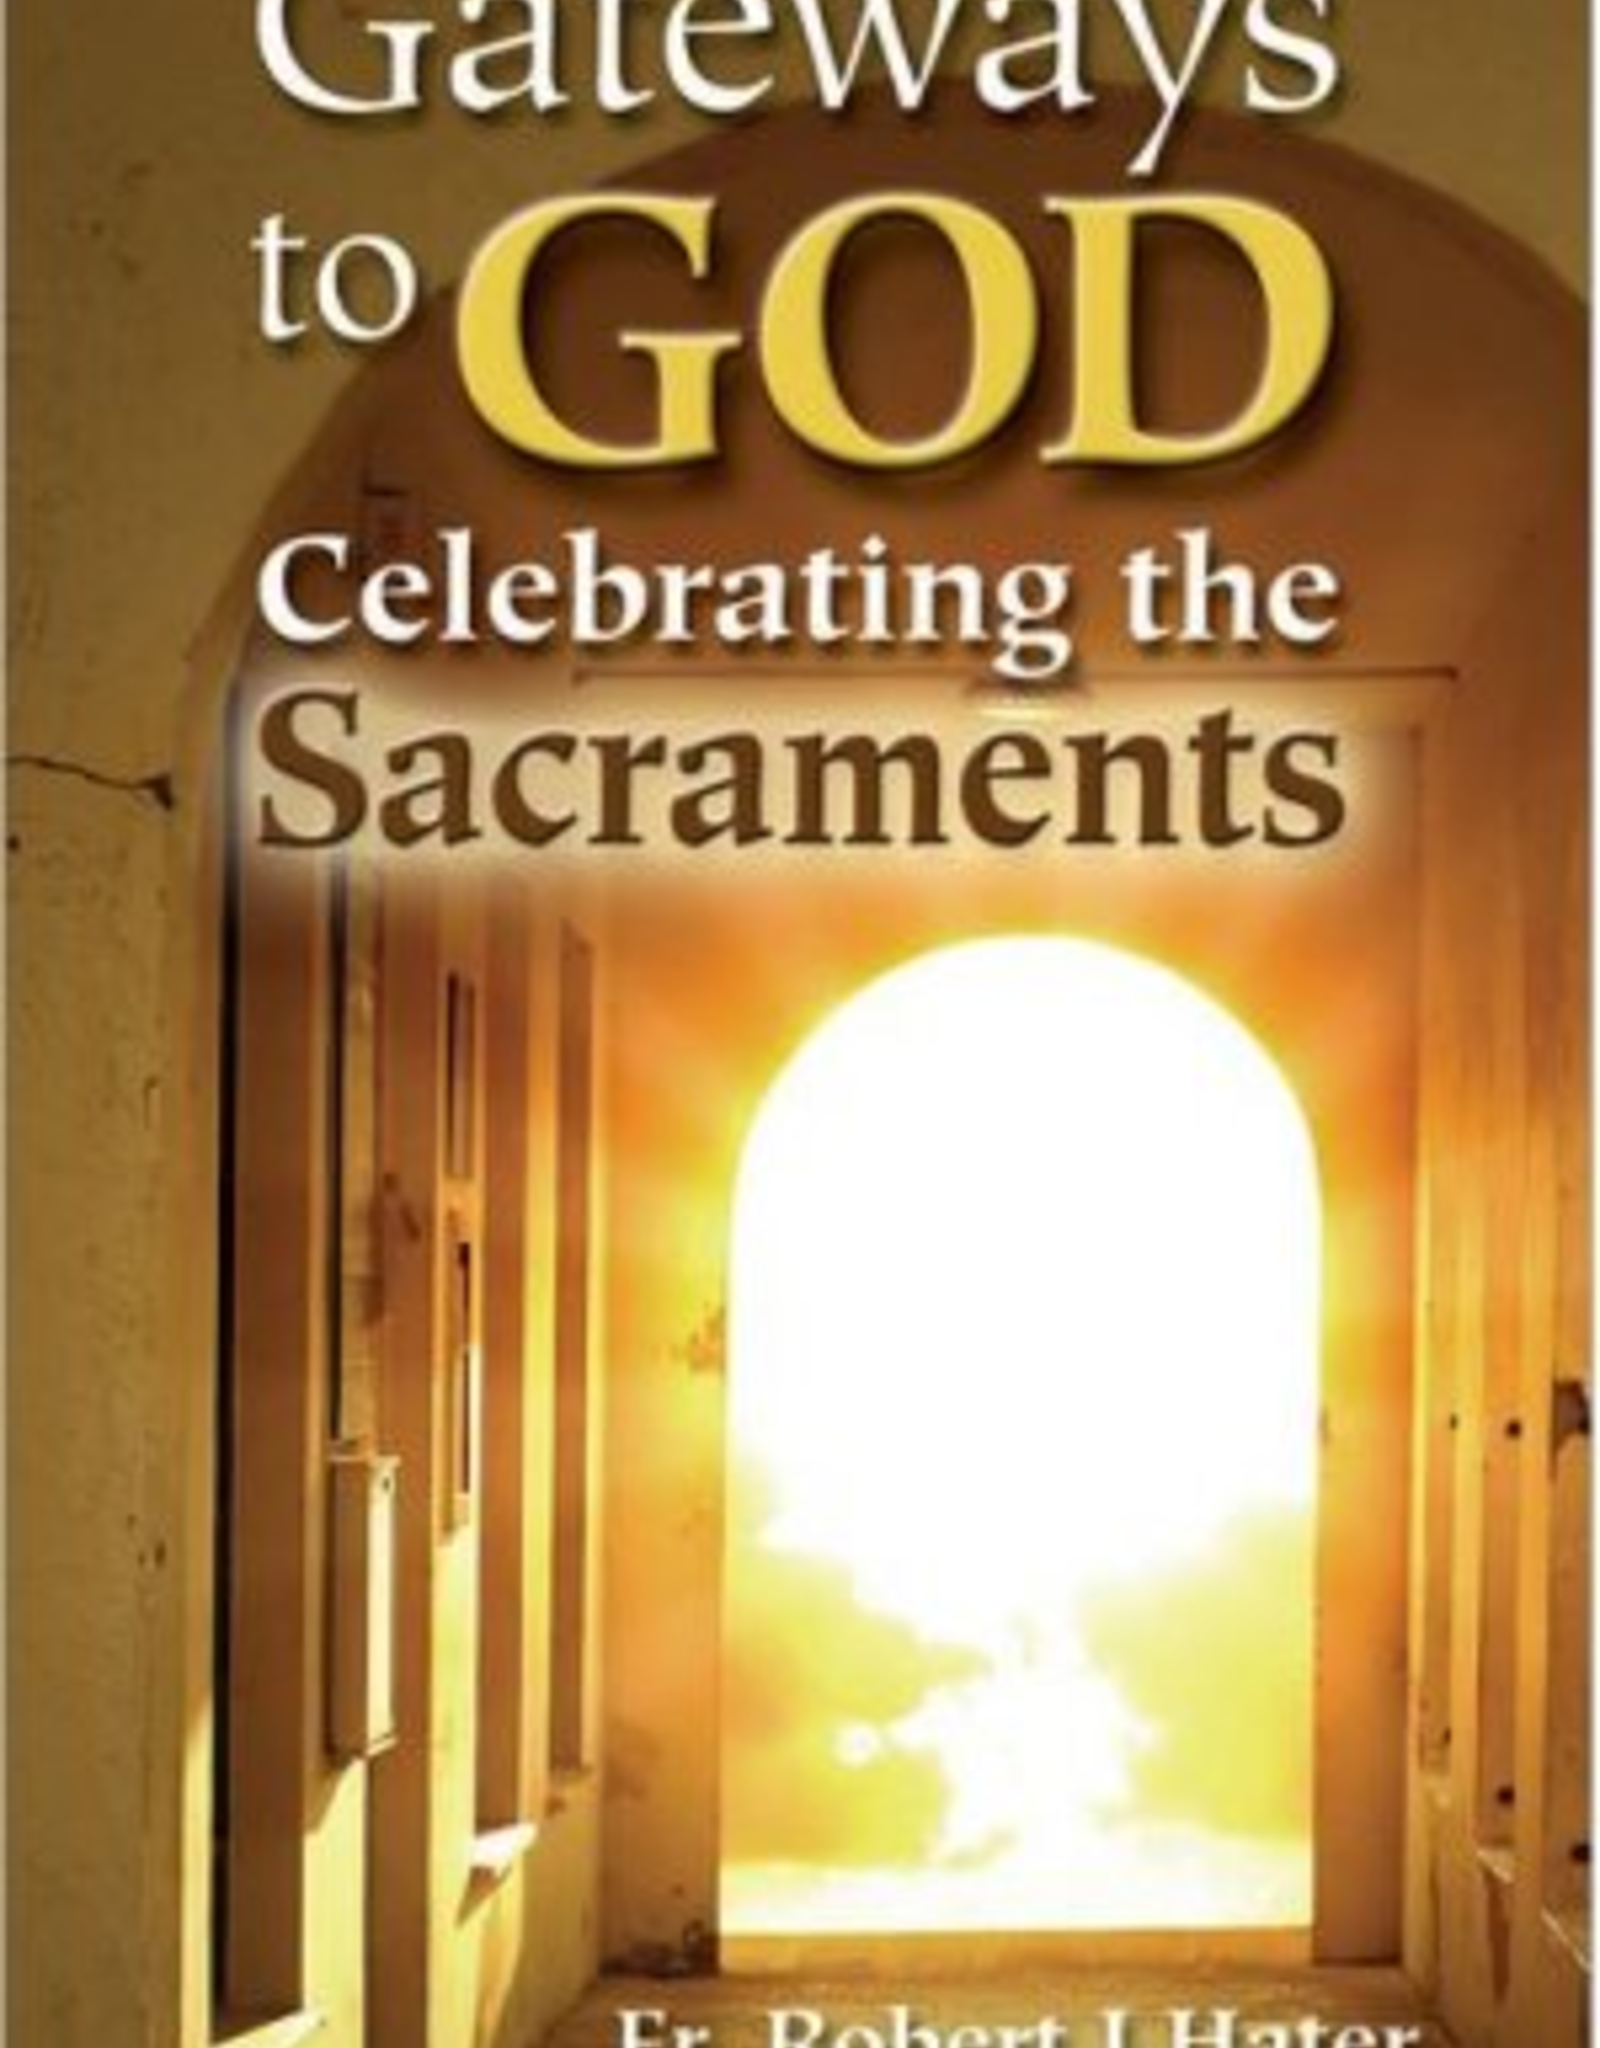 Our Sunday Visitor Gateways to GOD Celebrating the Sacraments, by Fr. Robert J. Hater